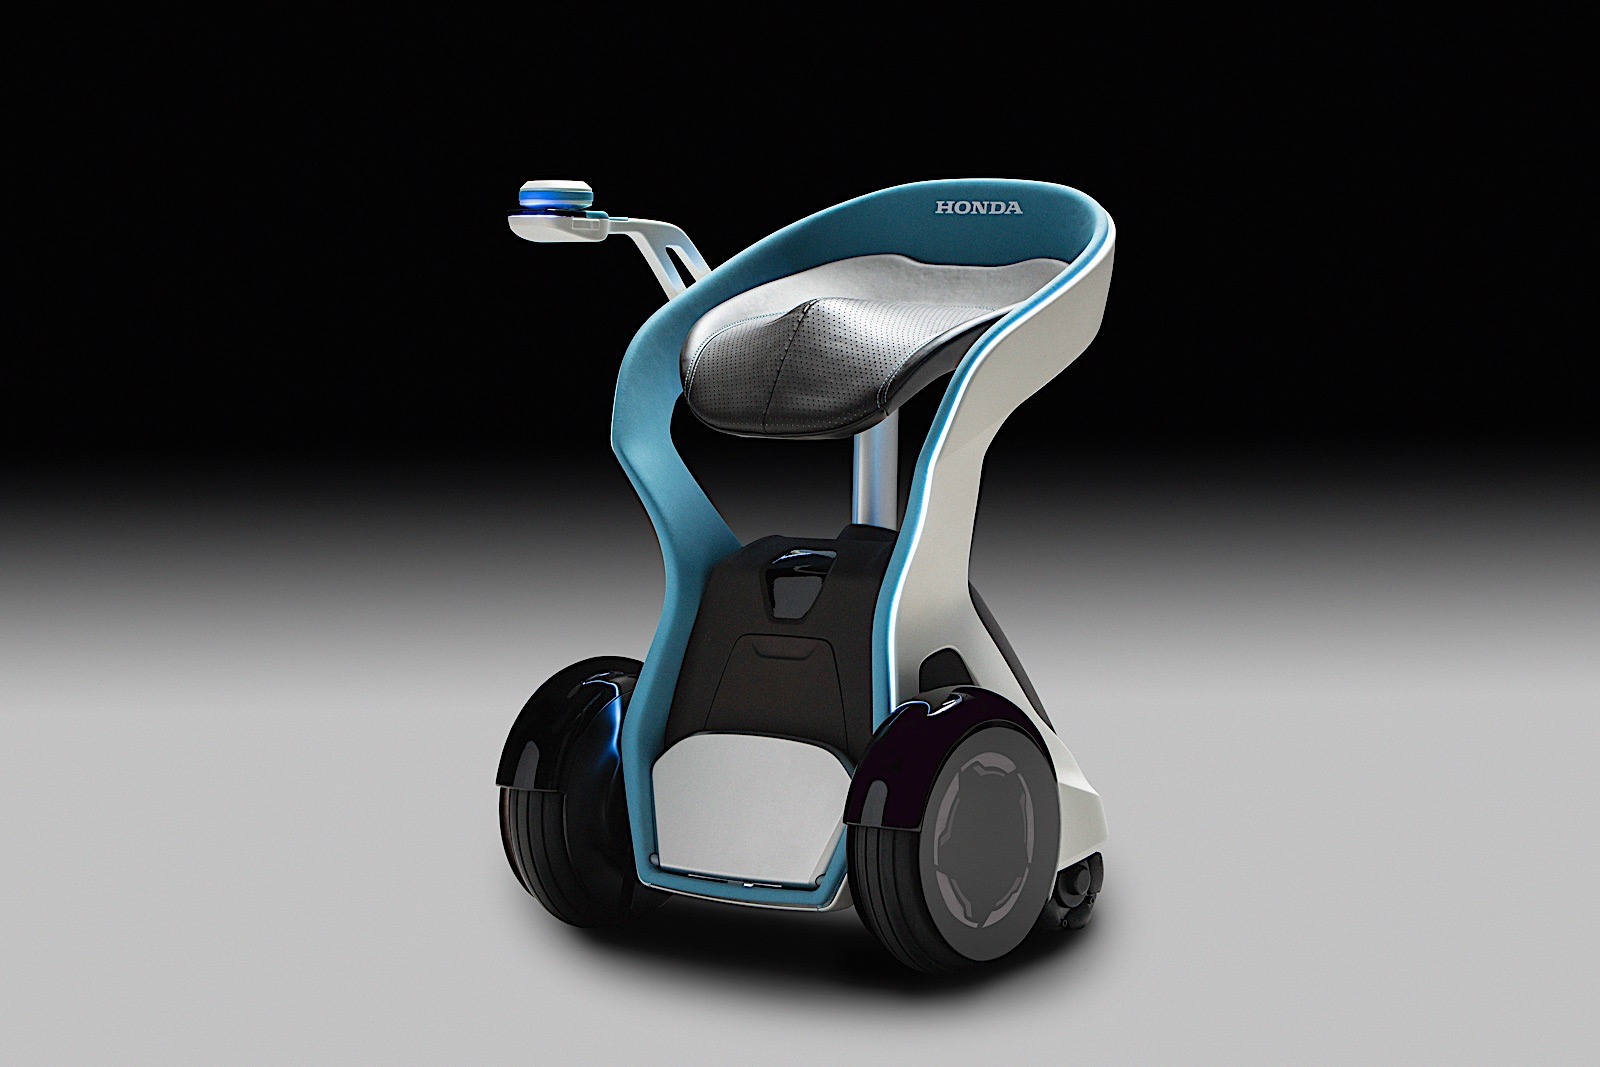 Honda's 3E-B18 is designed for casual use in indoor or outdoor spaces.